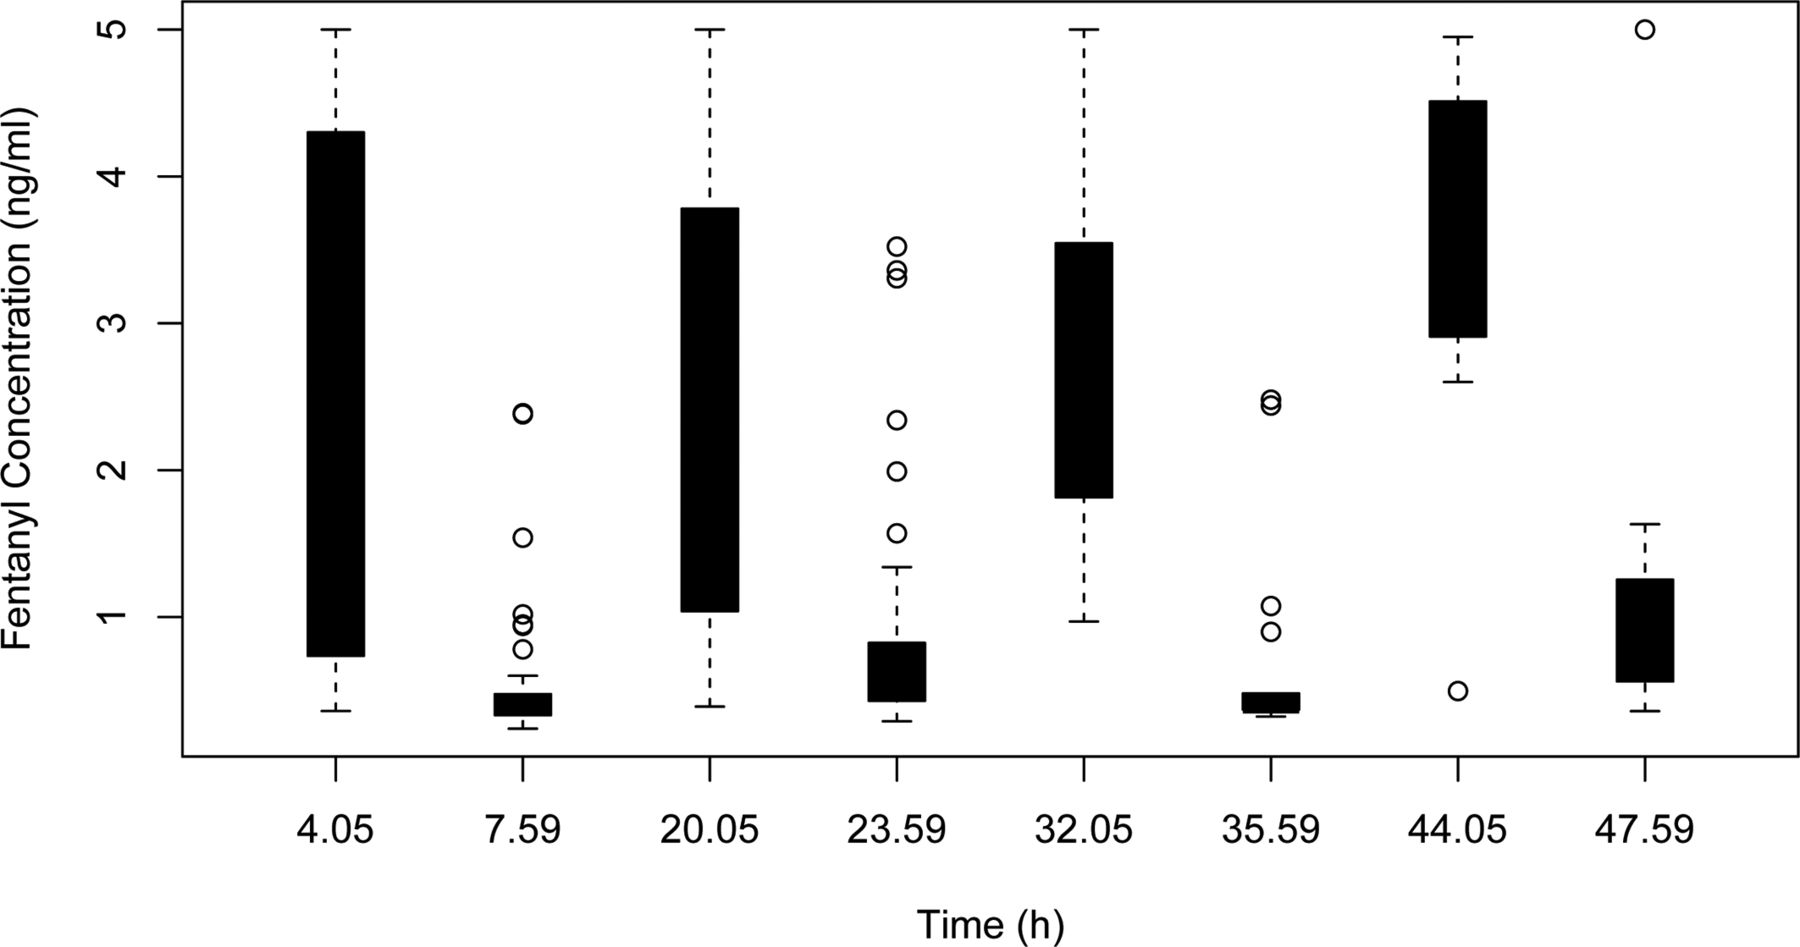 continuous infusion versus intermittent bolus doses of fentanyl for